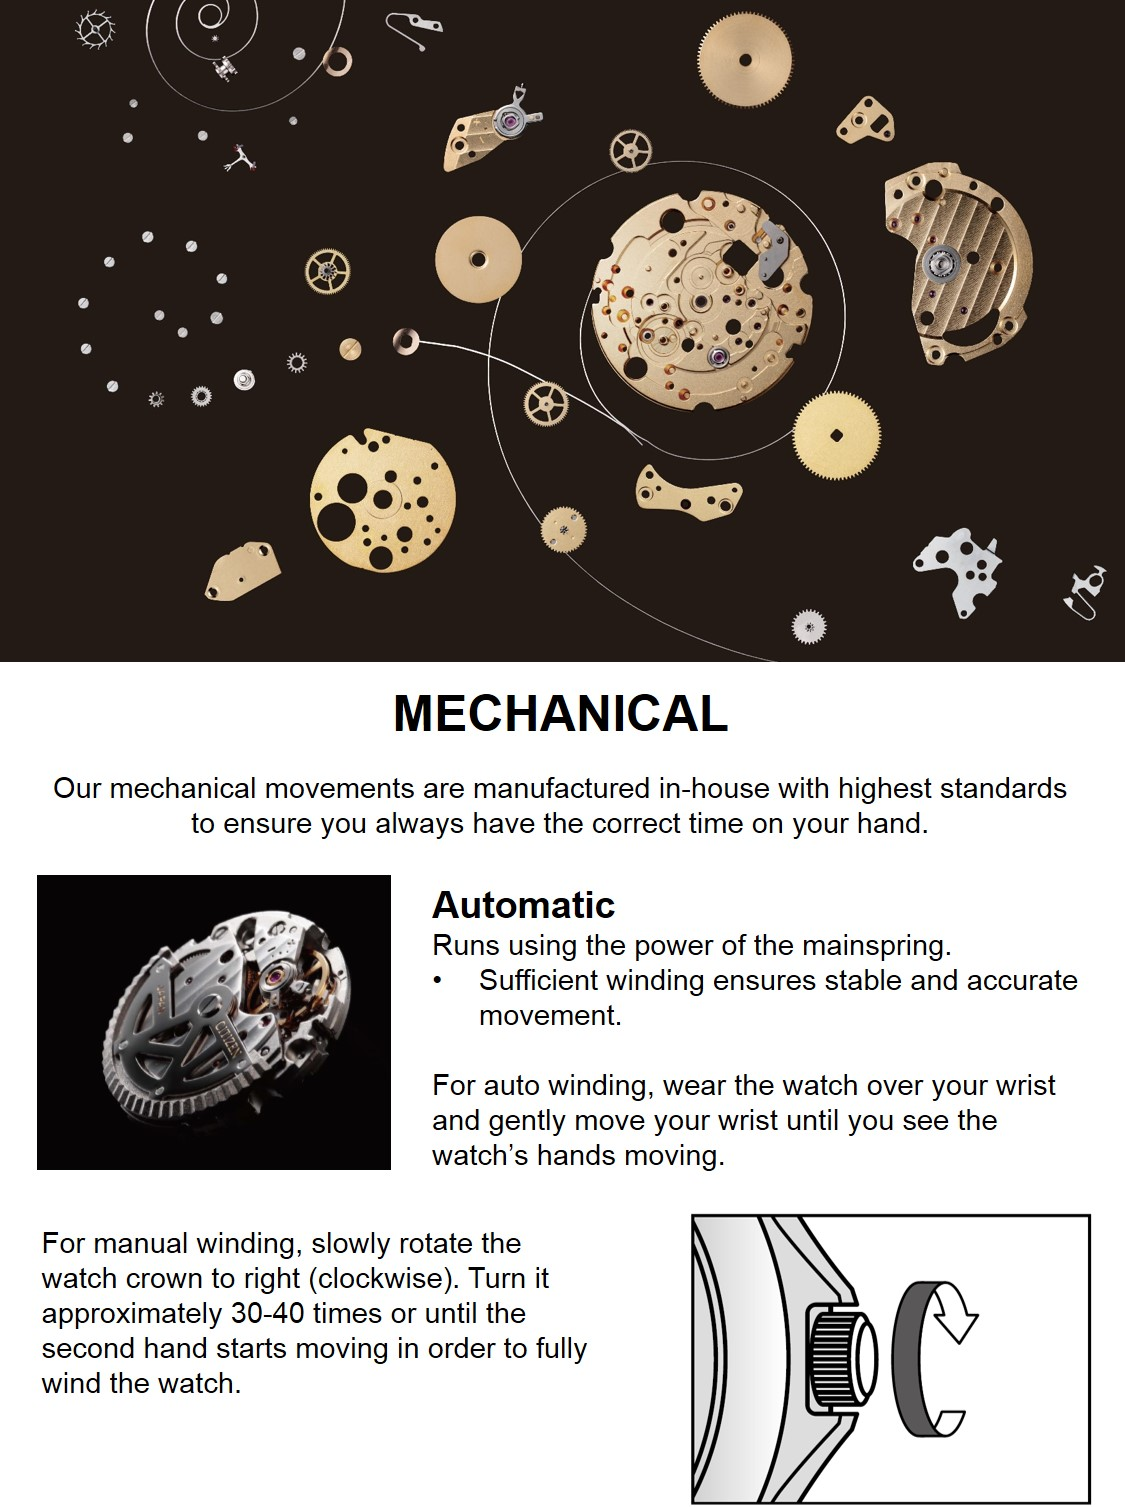 Mechanical story